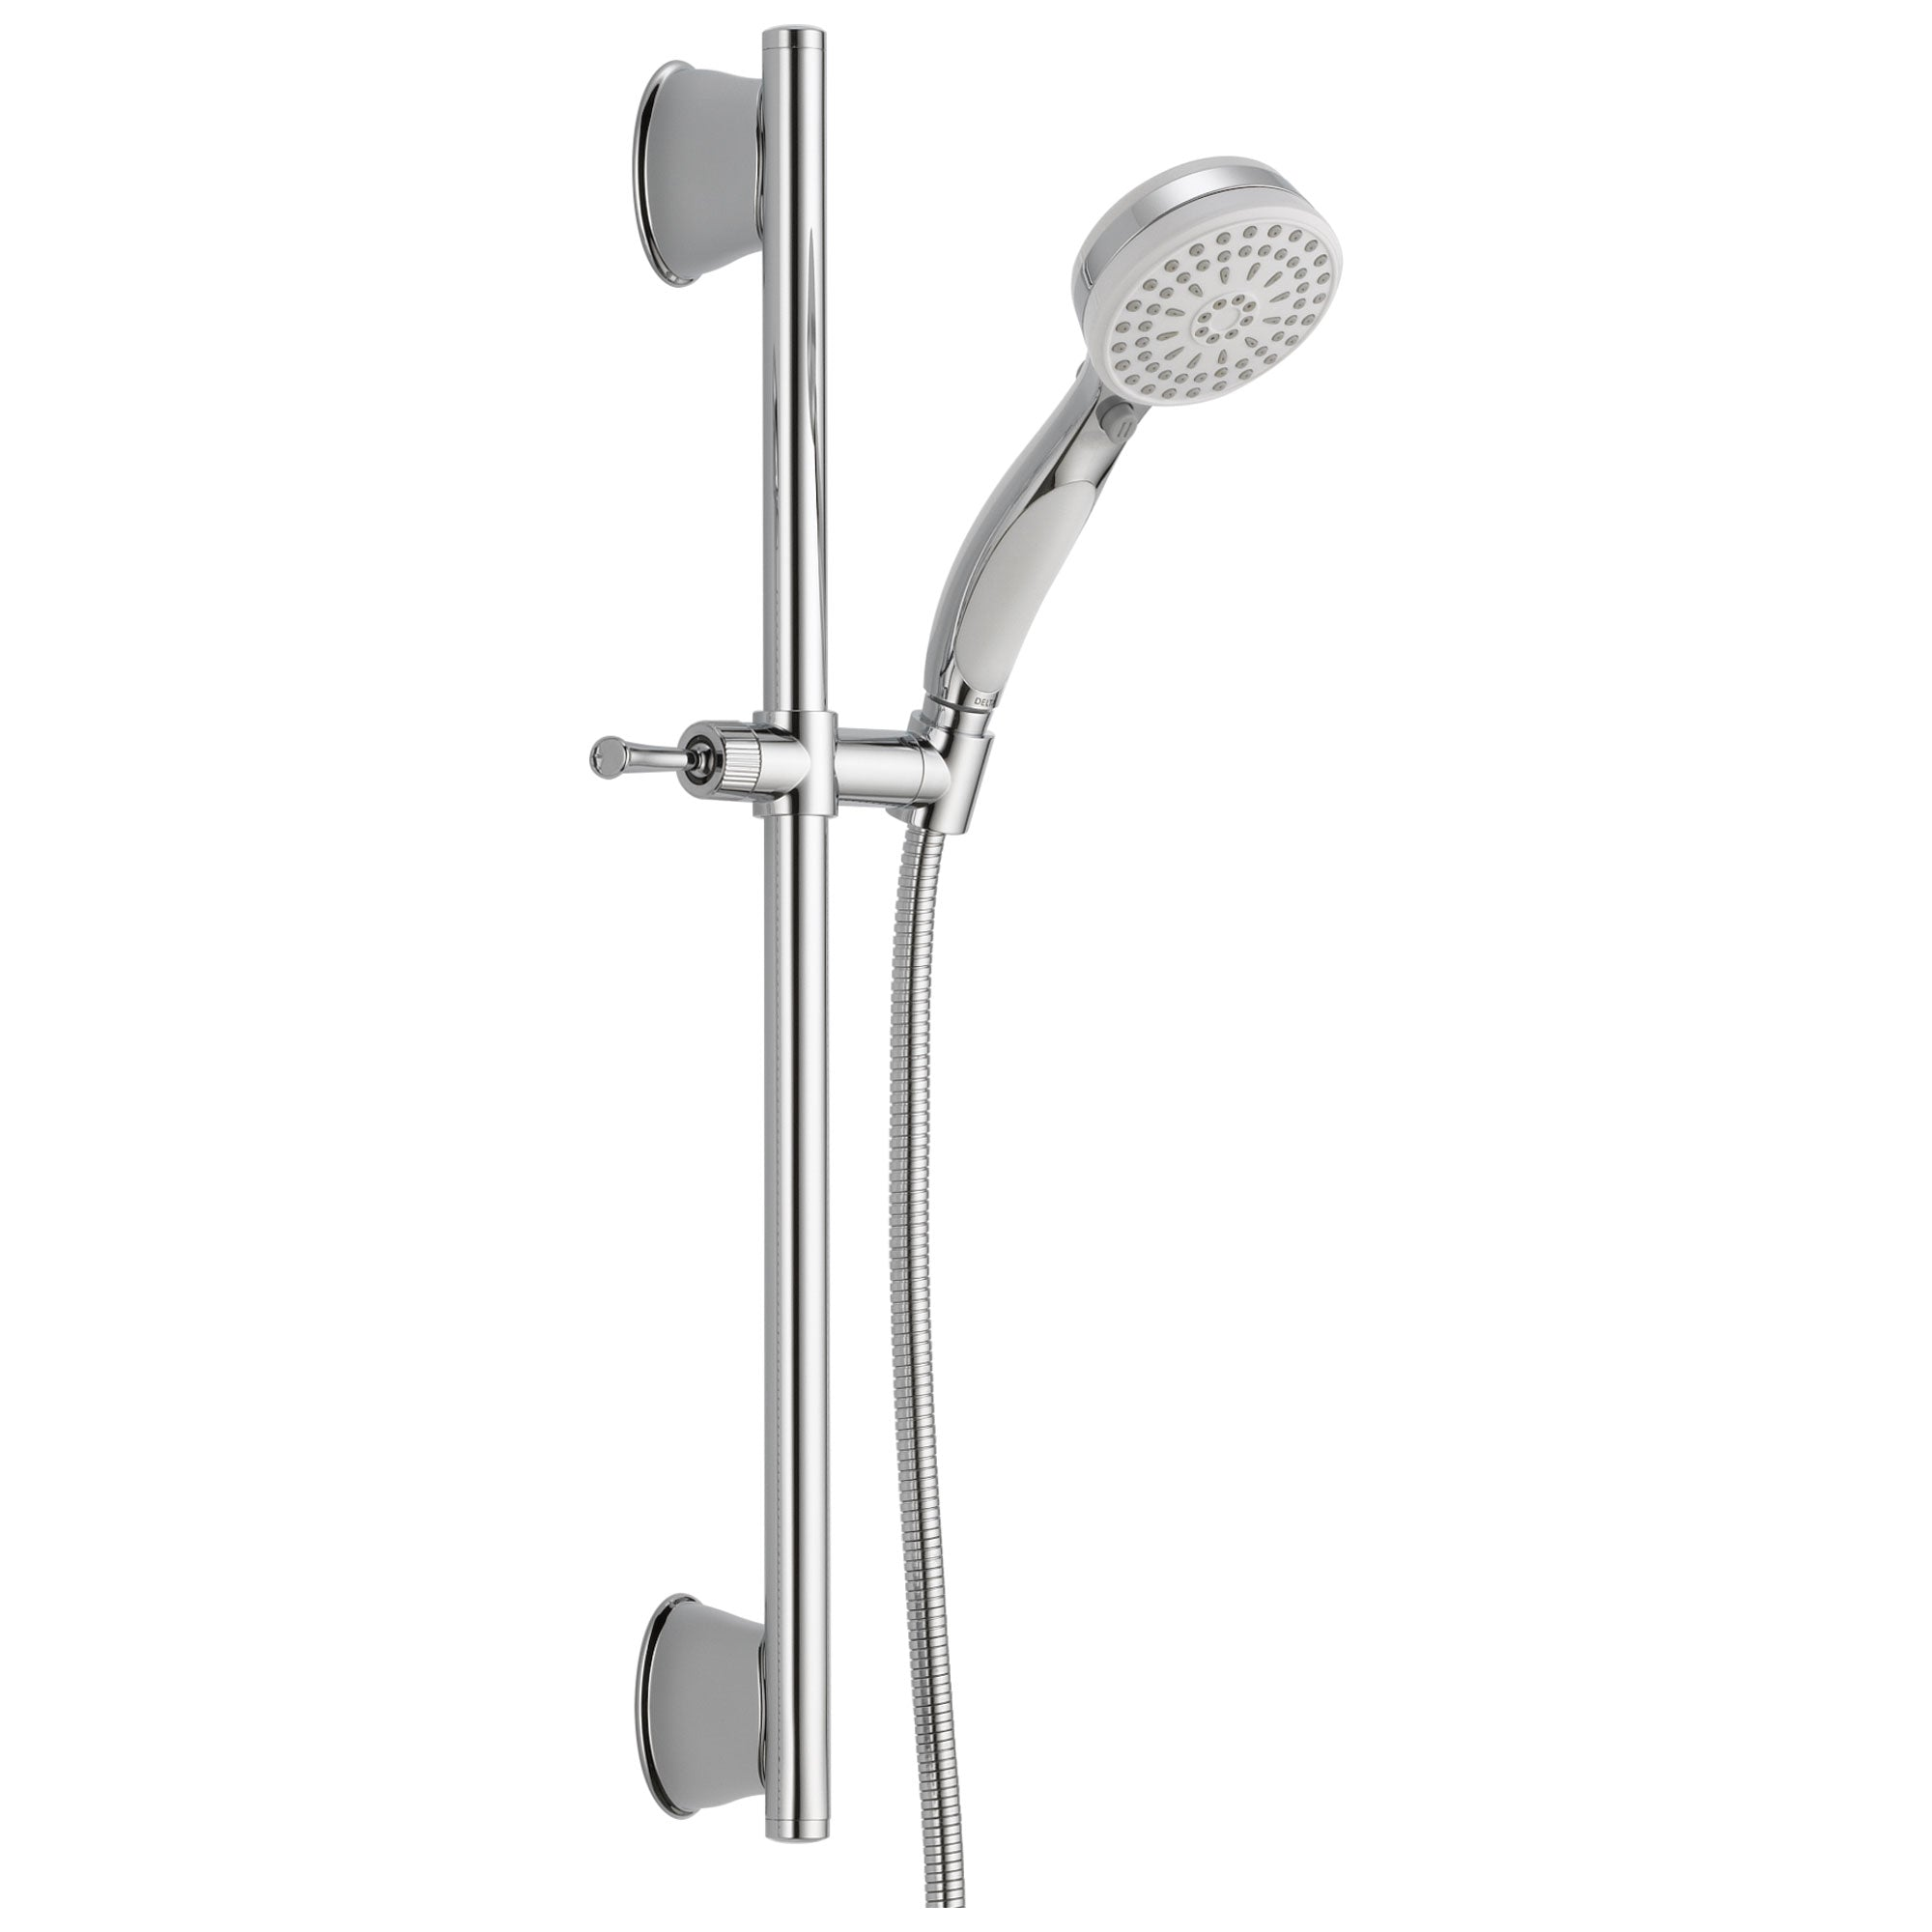 Delta Universal Showering Components Collection Chrome / White Finish ActivTouch Hand Held Shower with Slidebar and Hose D51549WC